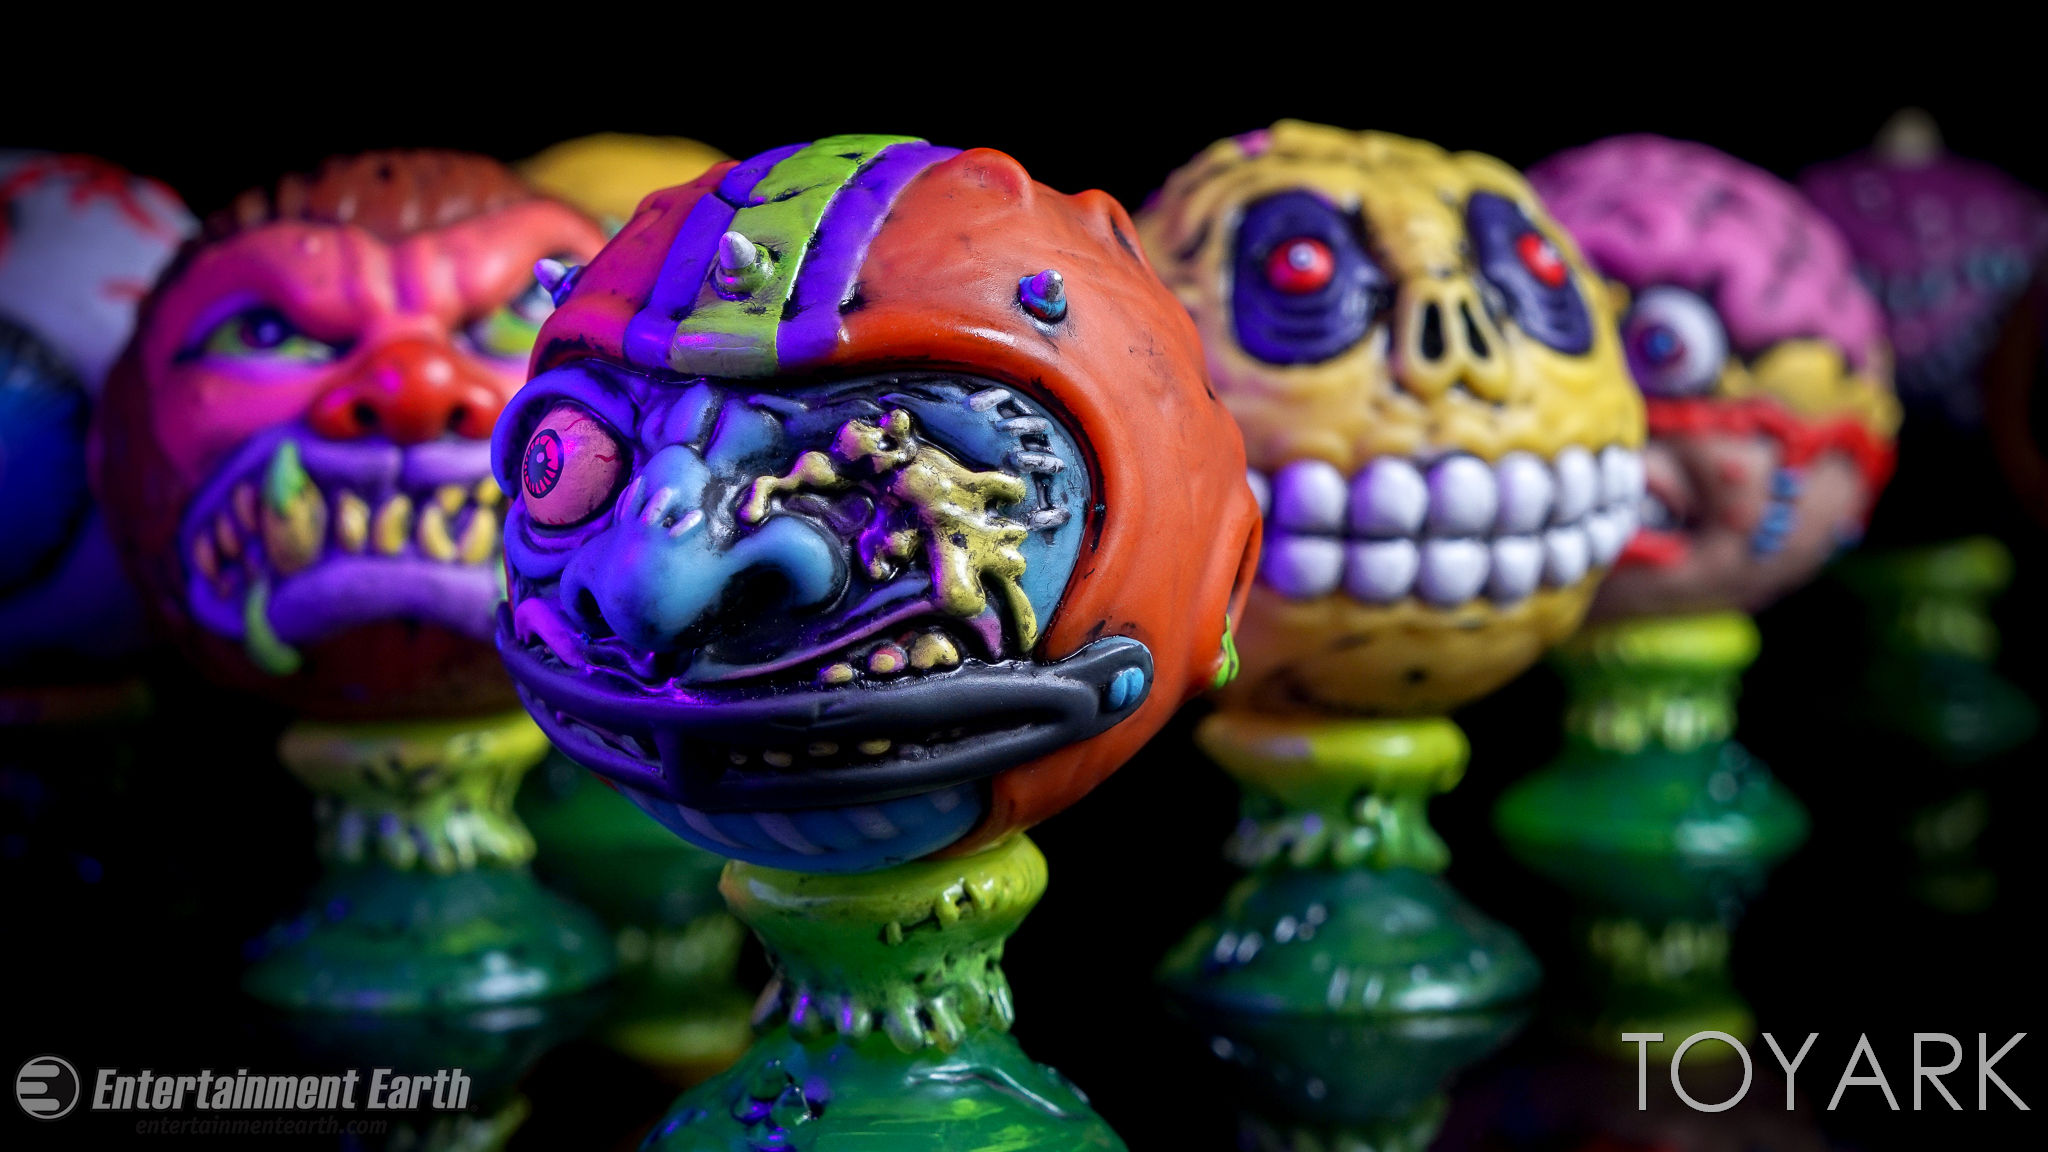 http://news.toyark.com/wp-content/uploads/sites/4/2017/02/Kidrobot-Madballs-Blind-Box-062.jpg